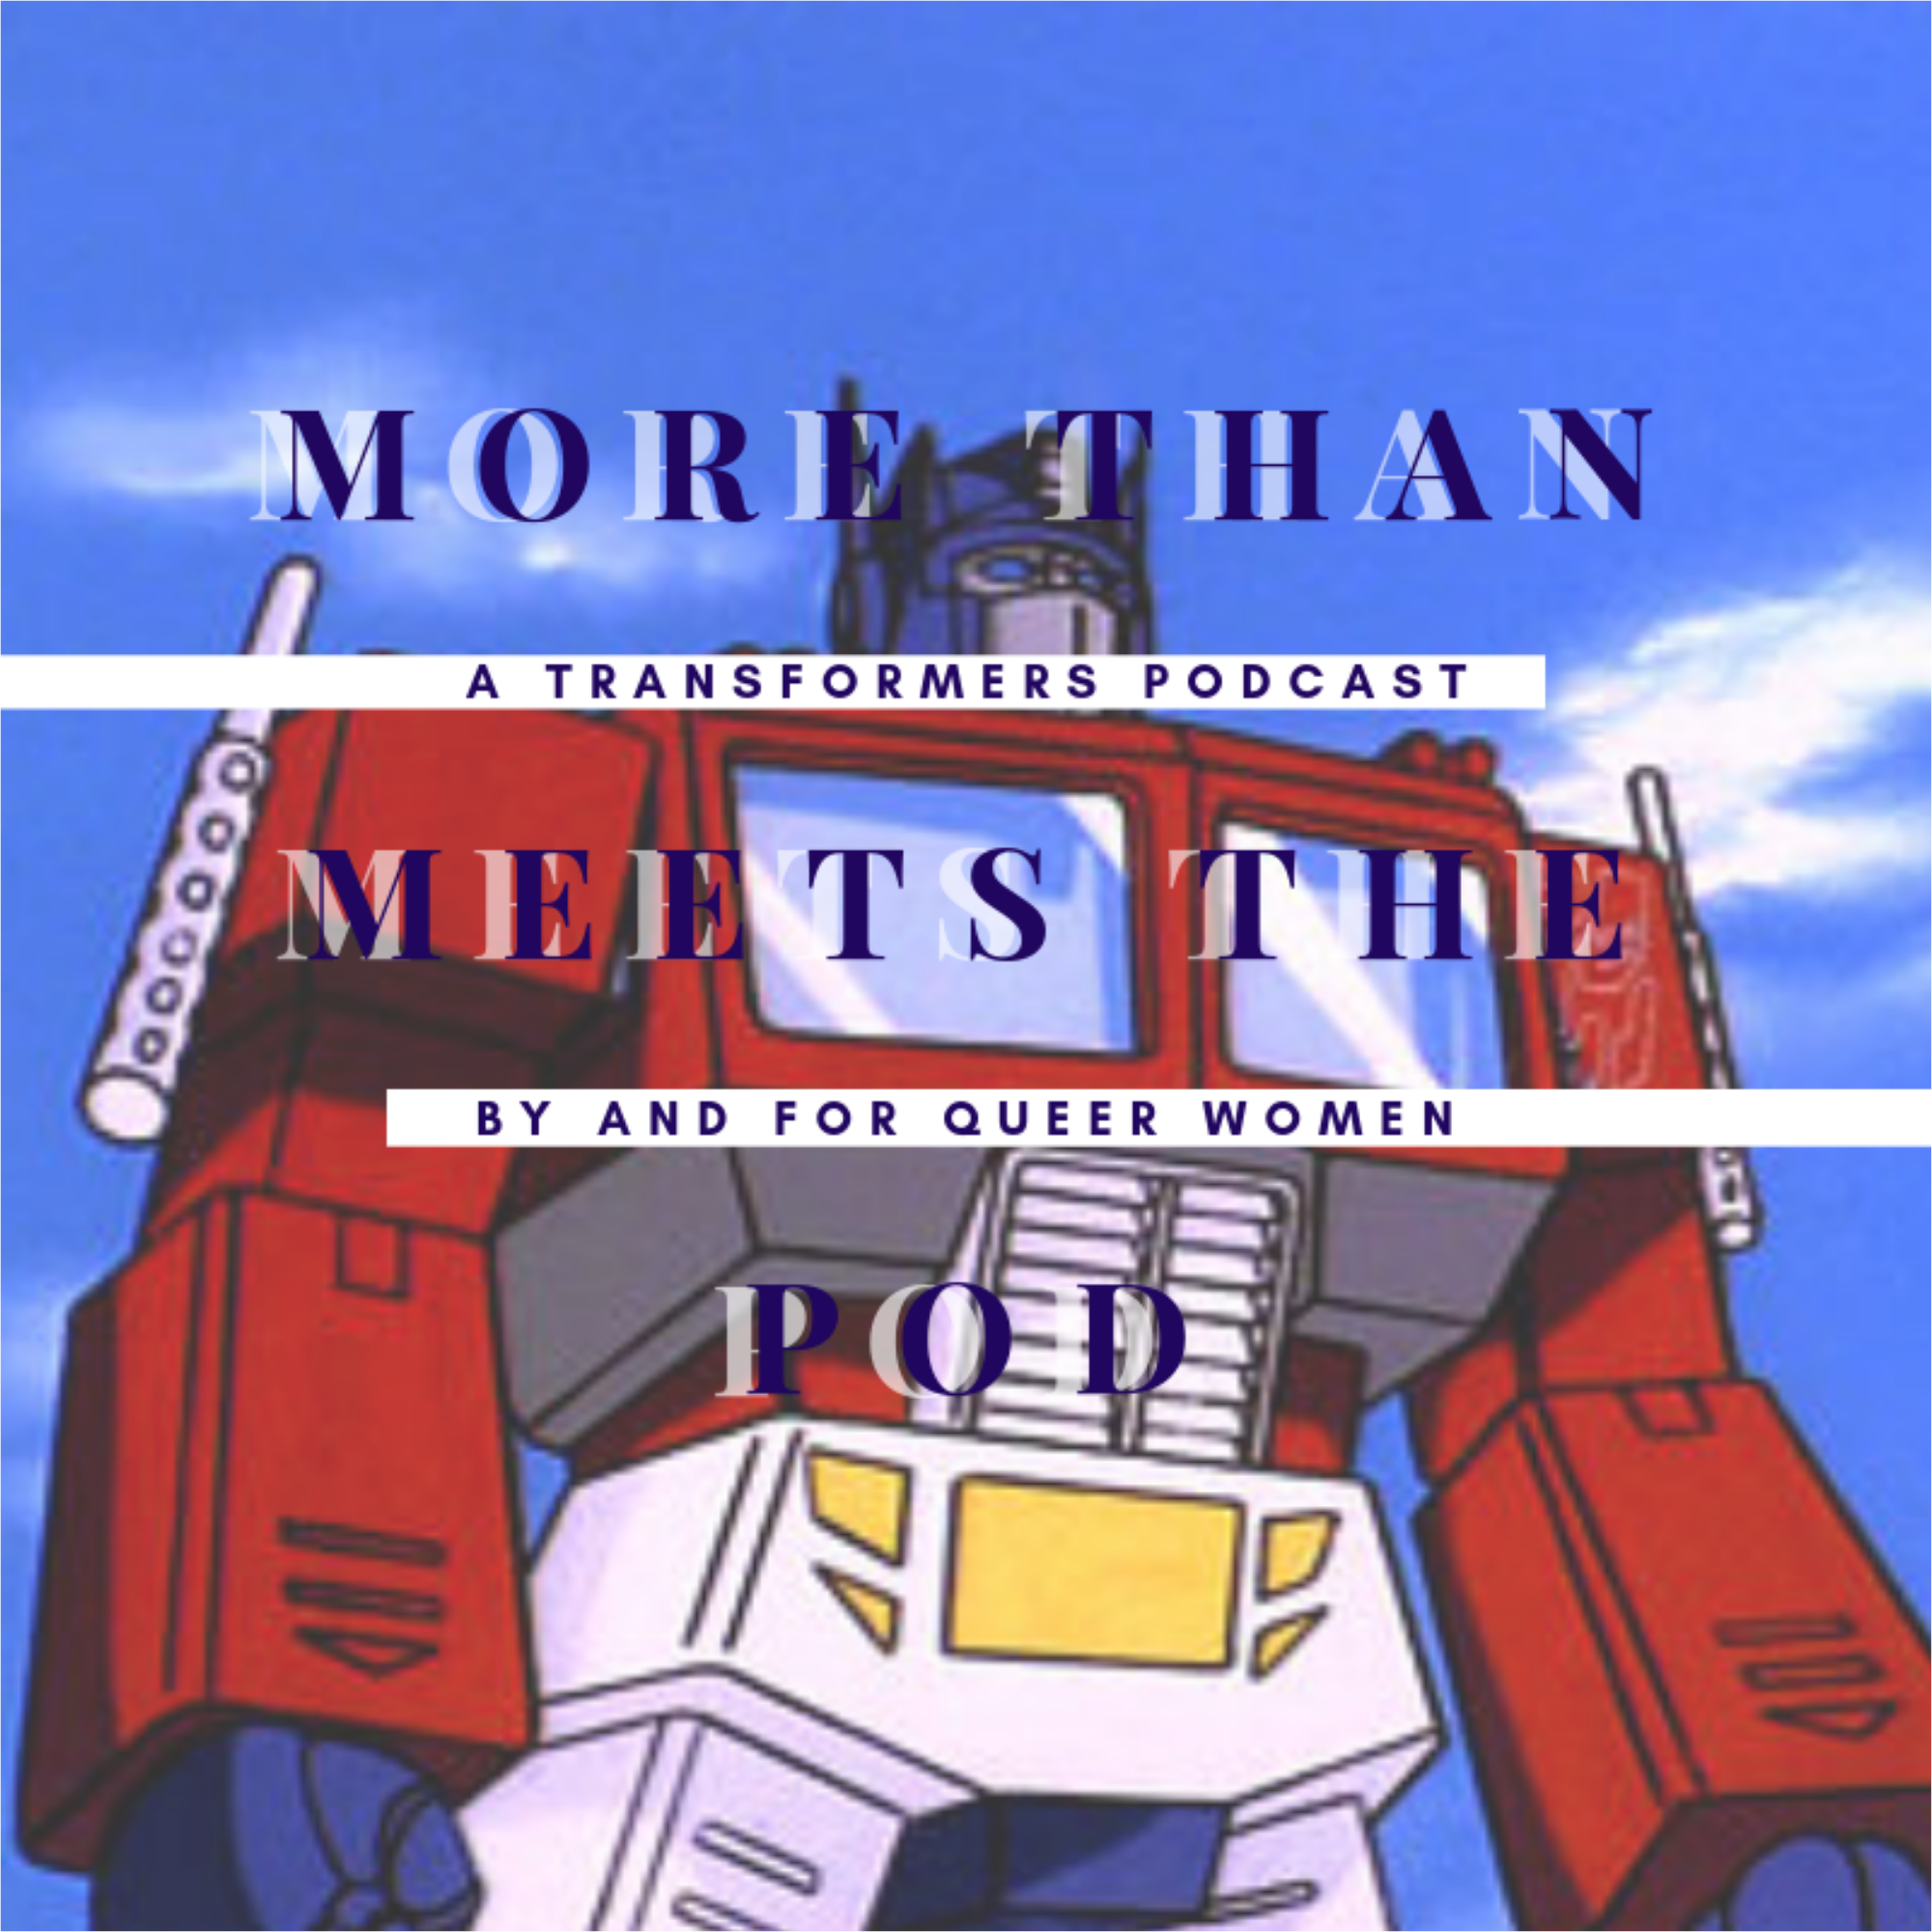 More Than Meets The Pod | Listen Free on Castbox